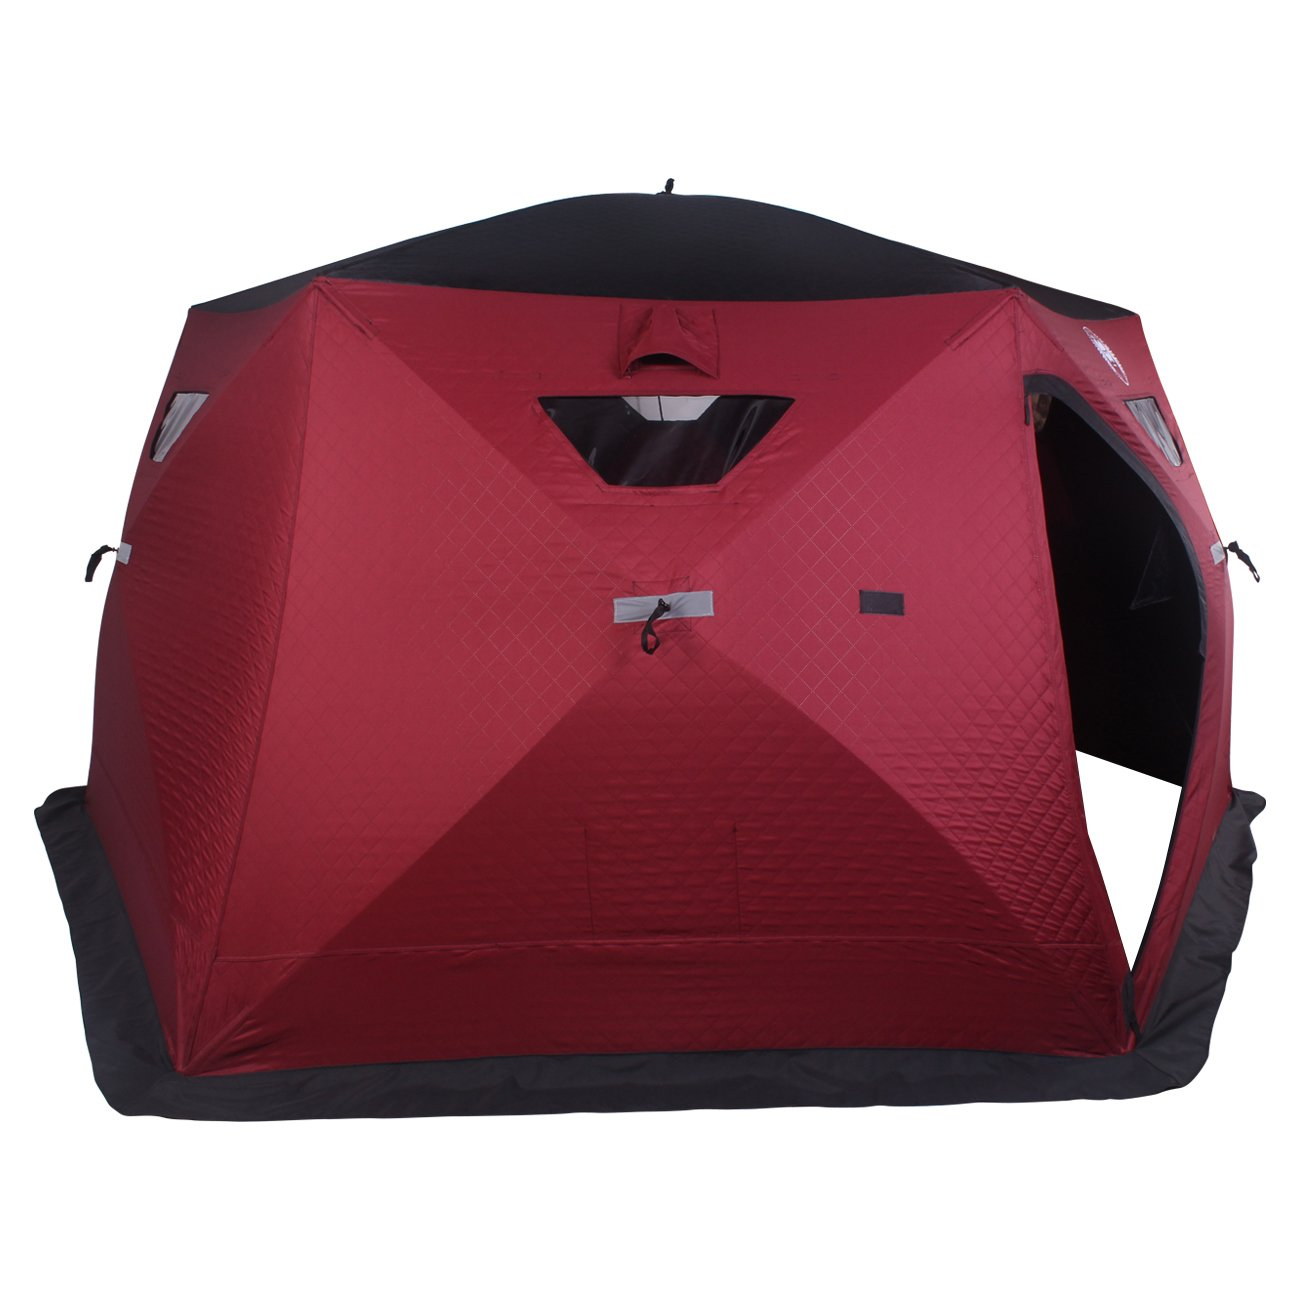 Hex-Hub 6 to 8 Man Portable Thermal Ice Shelter by Thunderbay